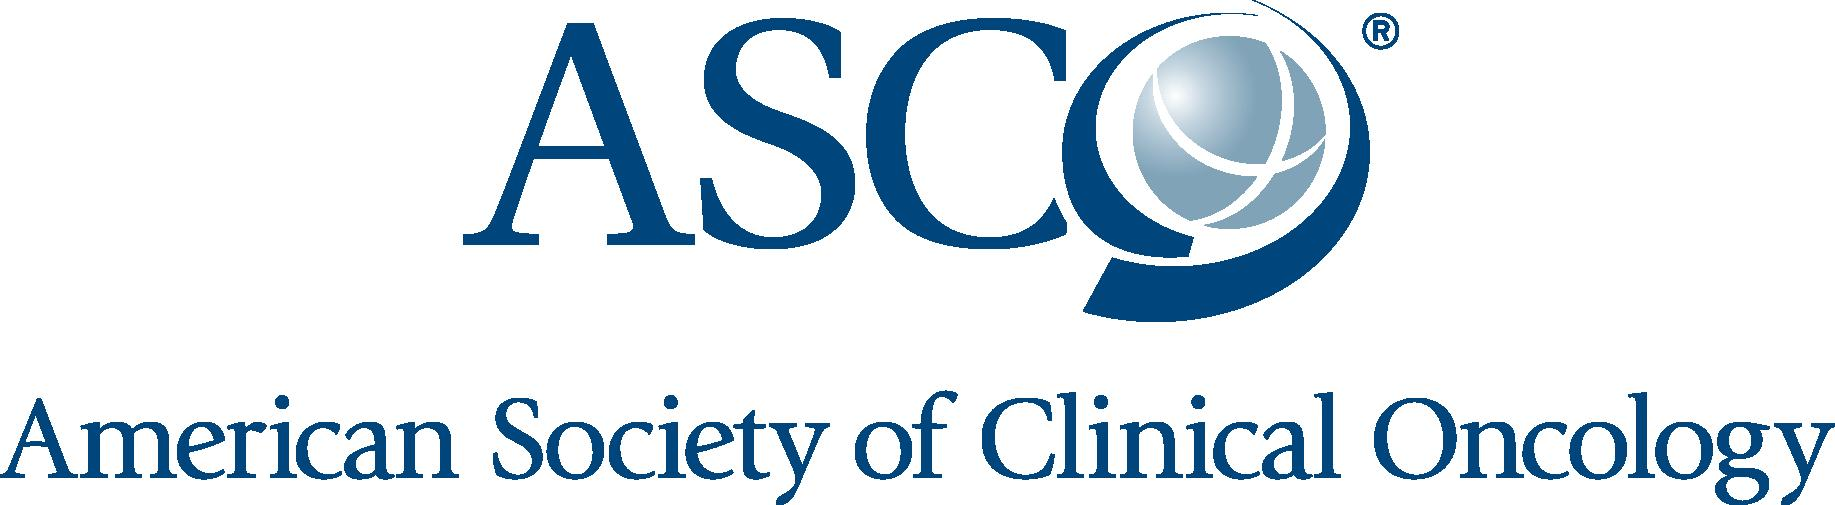 American-Society-of-Clinical-Oncology